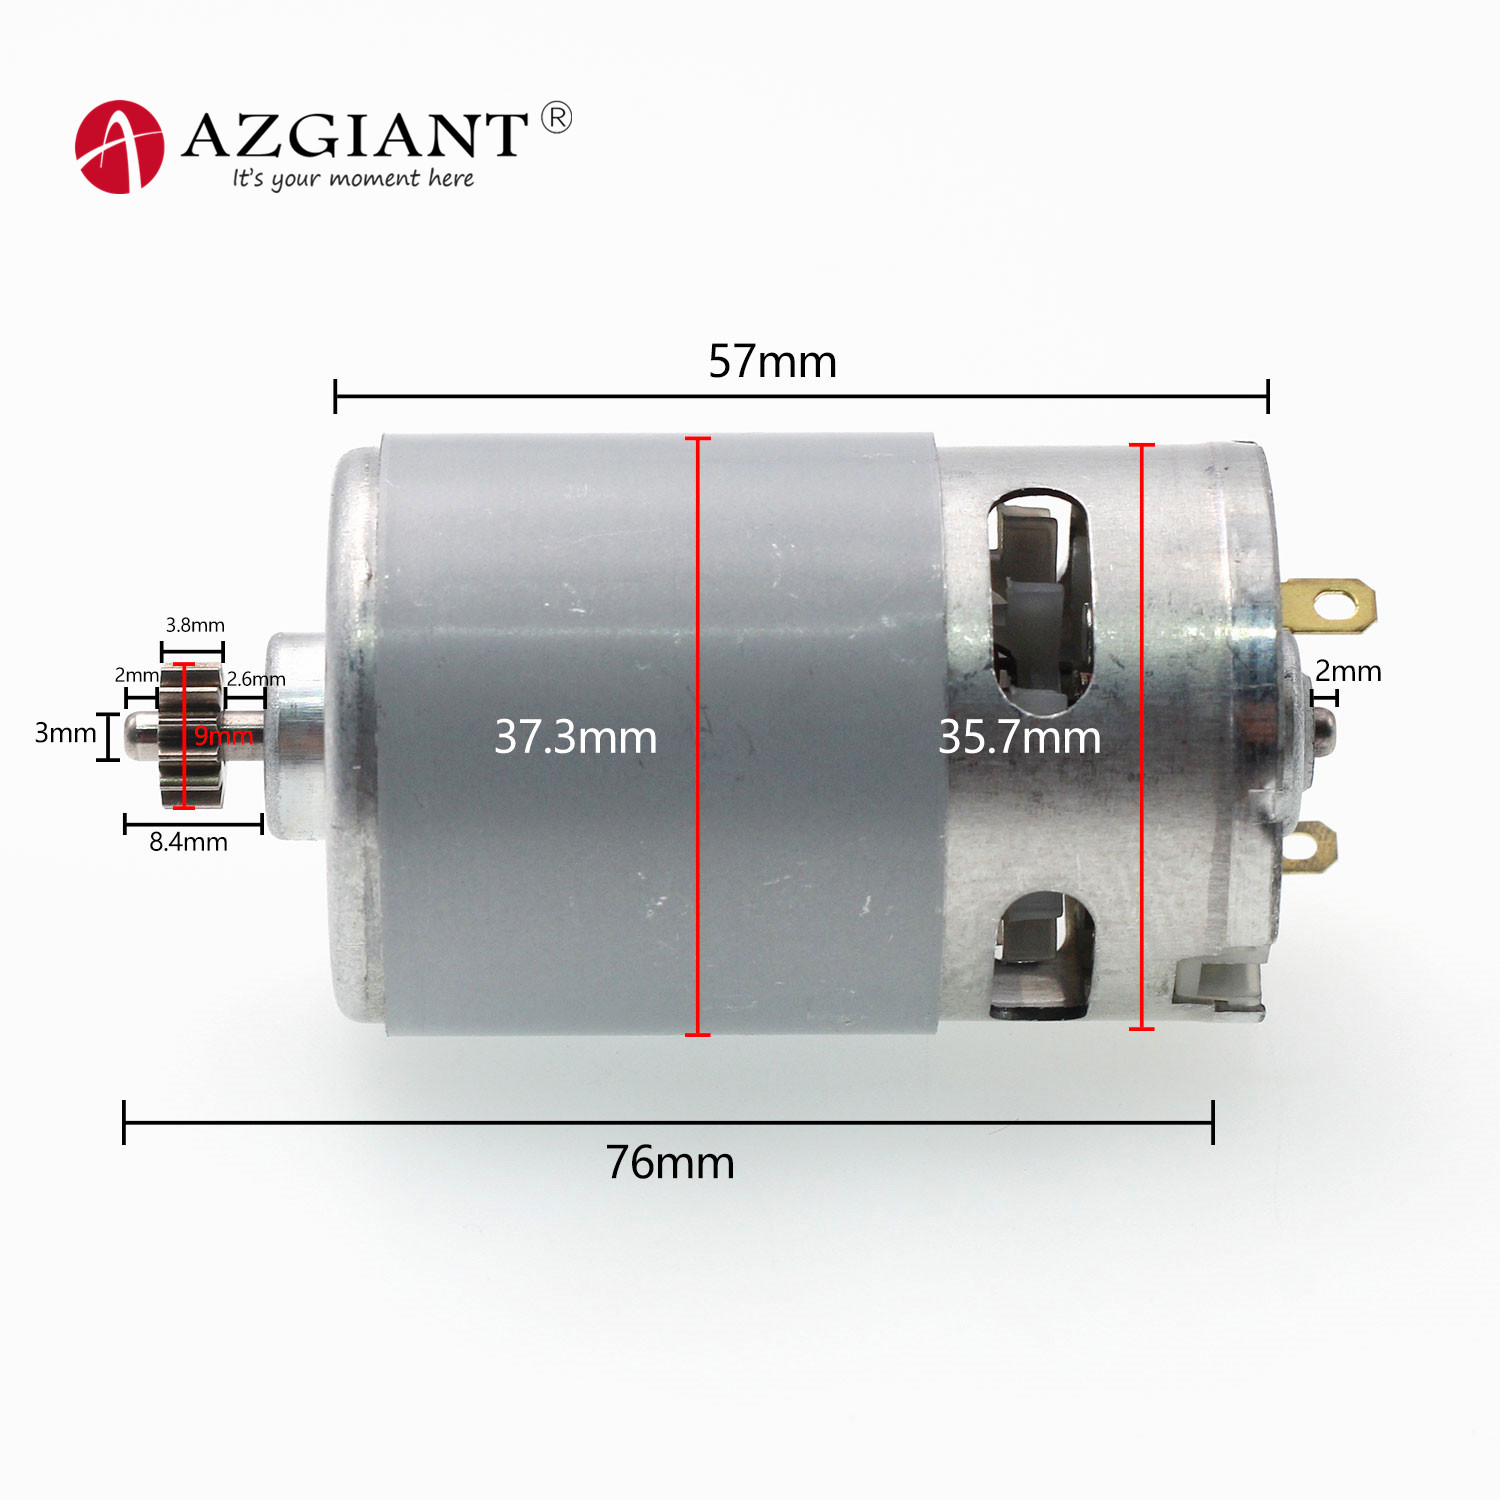 RS550 15T 10.8V Motor Replace for BOSCH GSR10.8-2LI RS 550-8518 Electric Drill